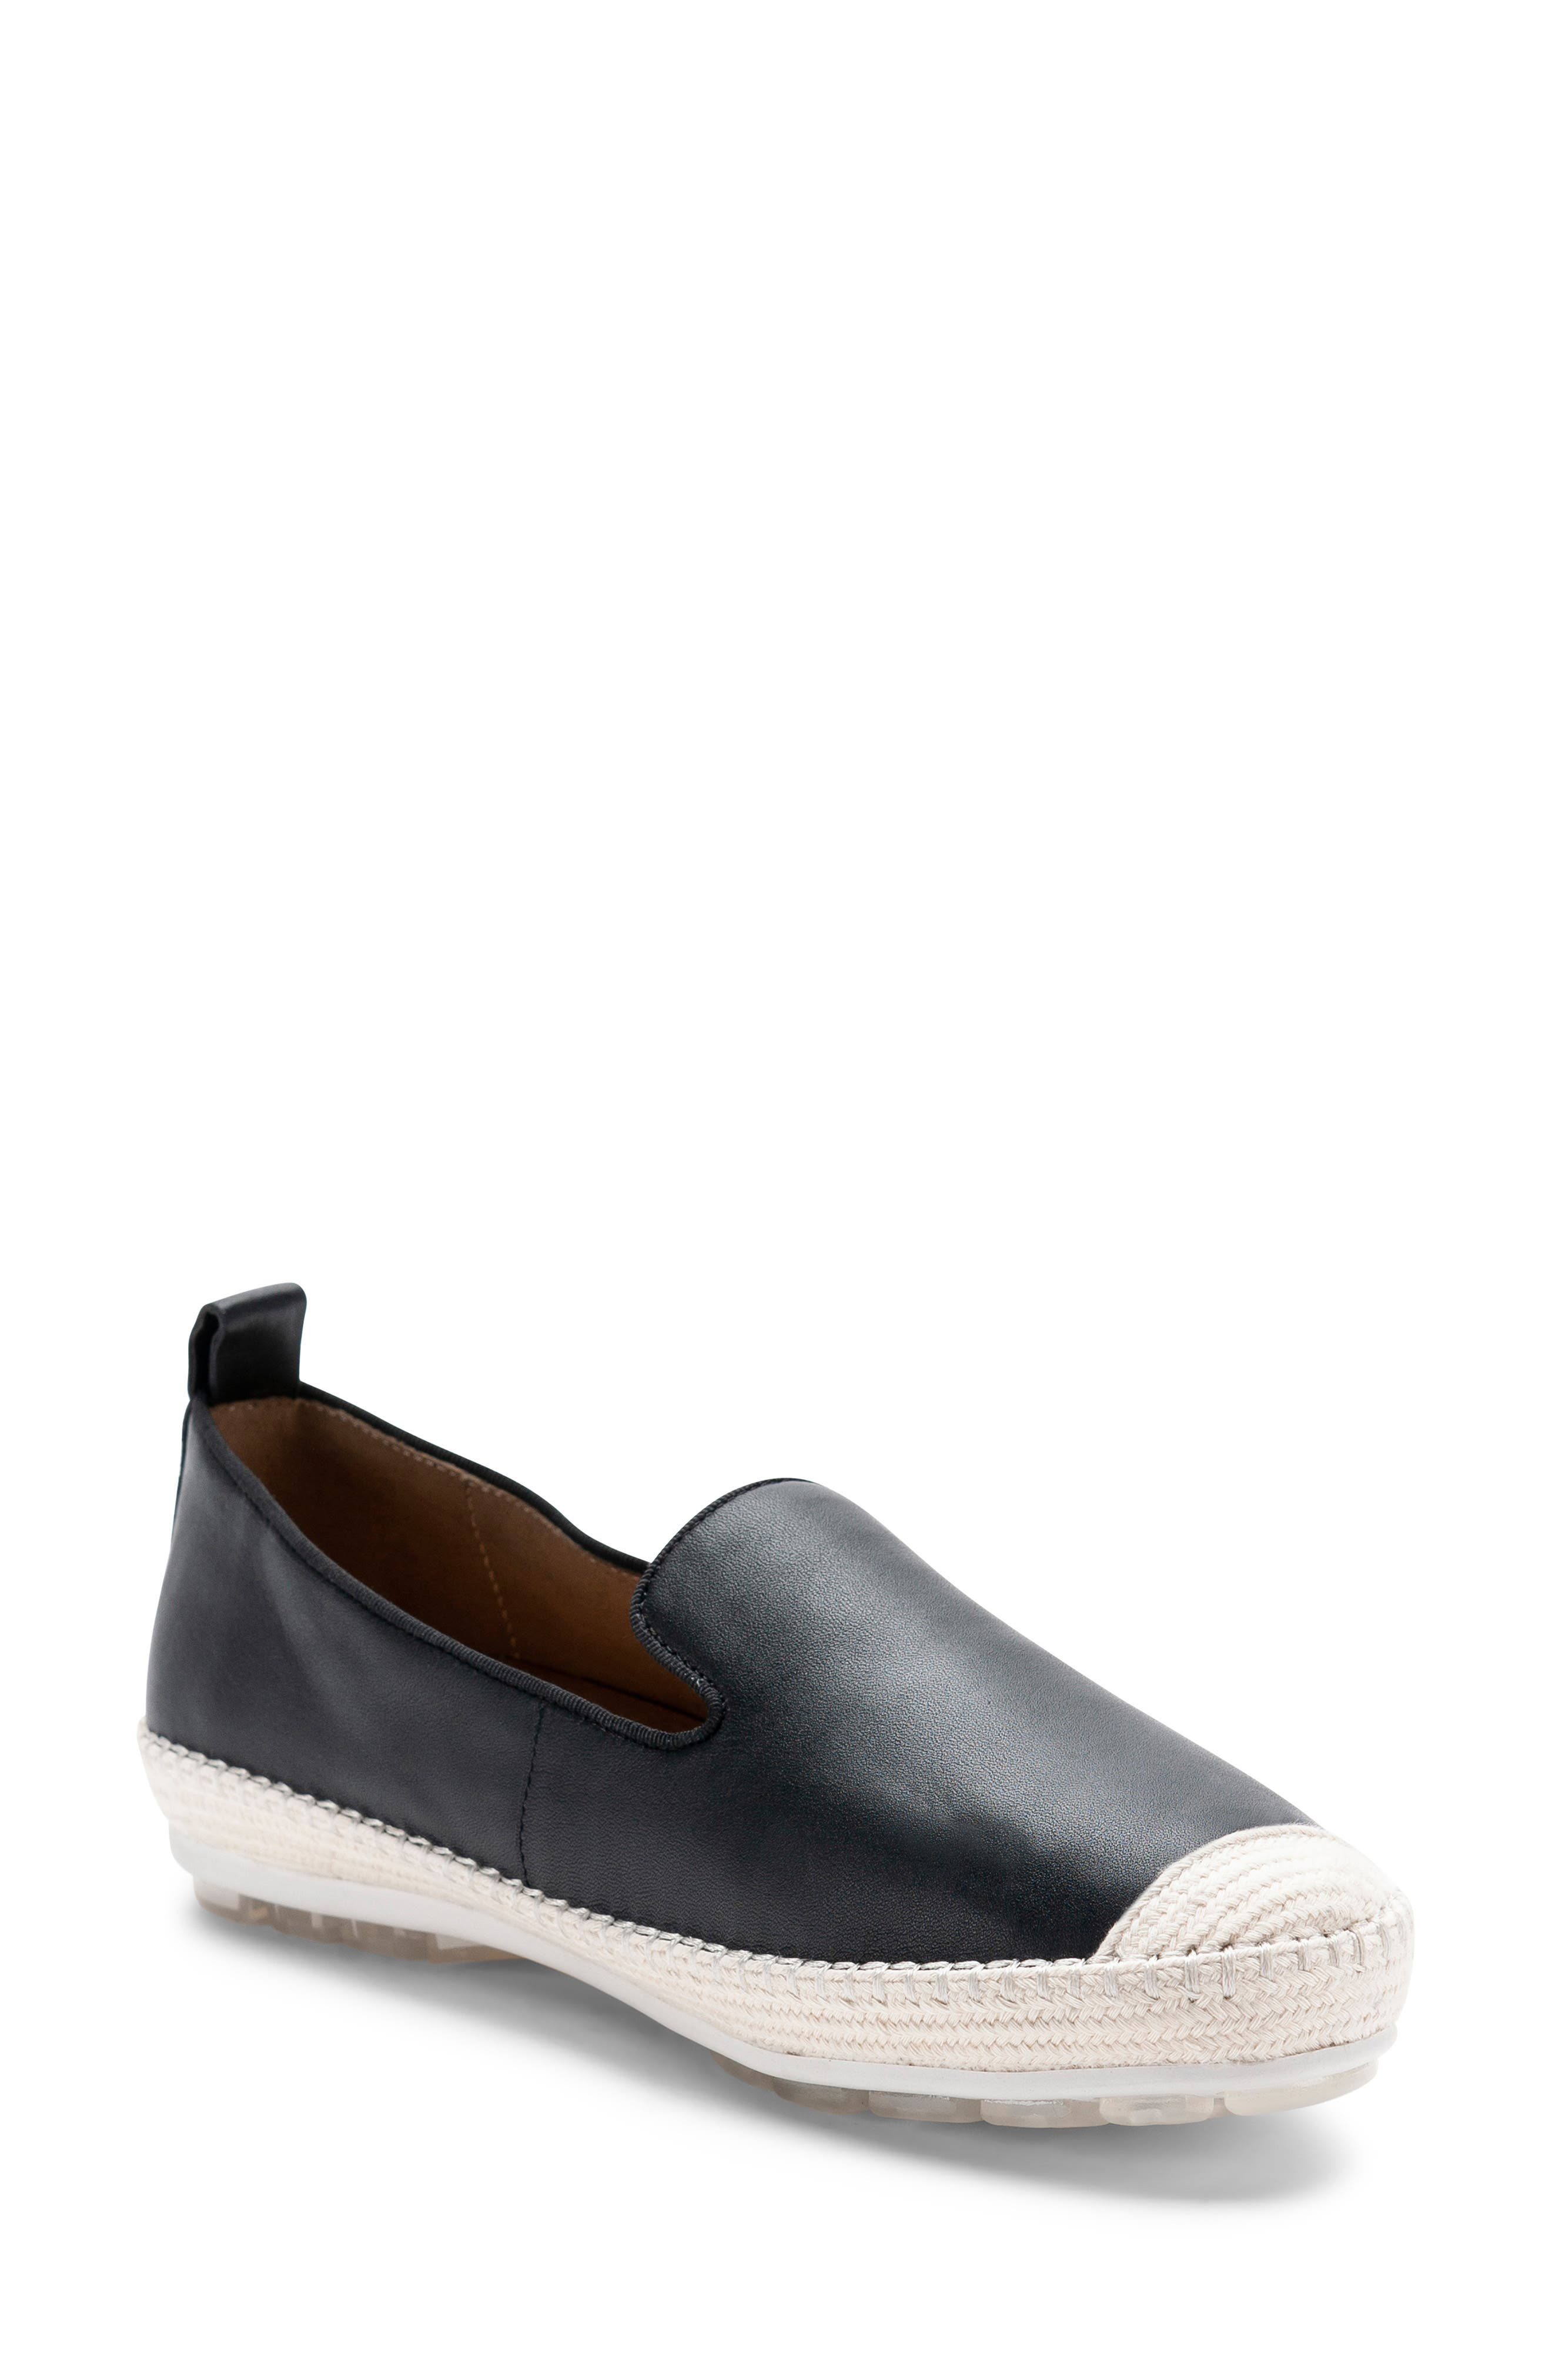 Bella Waterproof Espadrille Flat,                             Main thumbnail 1, color,                             BLACK LEATHER